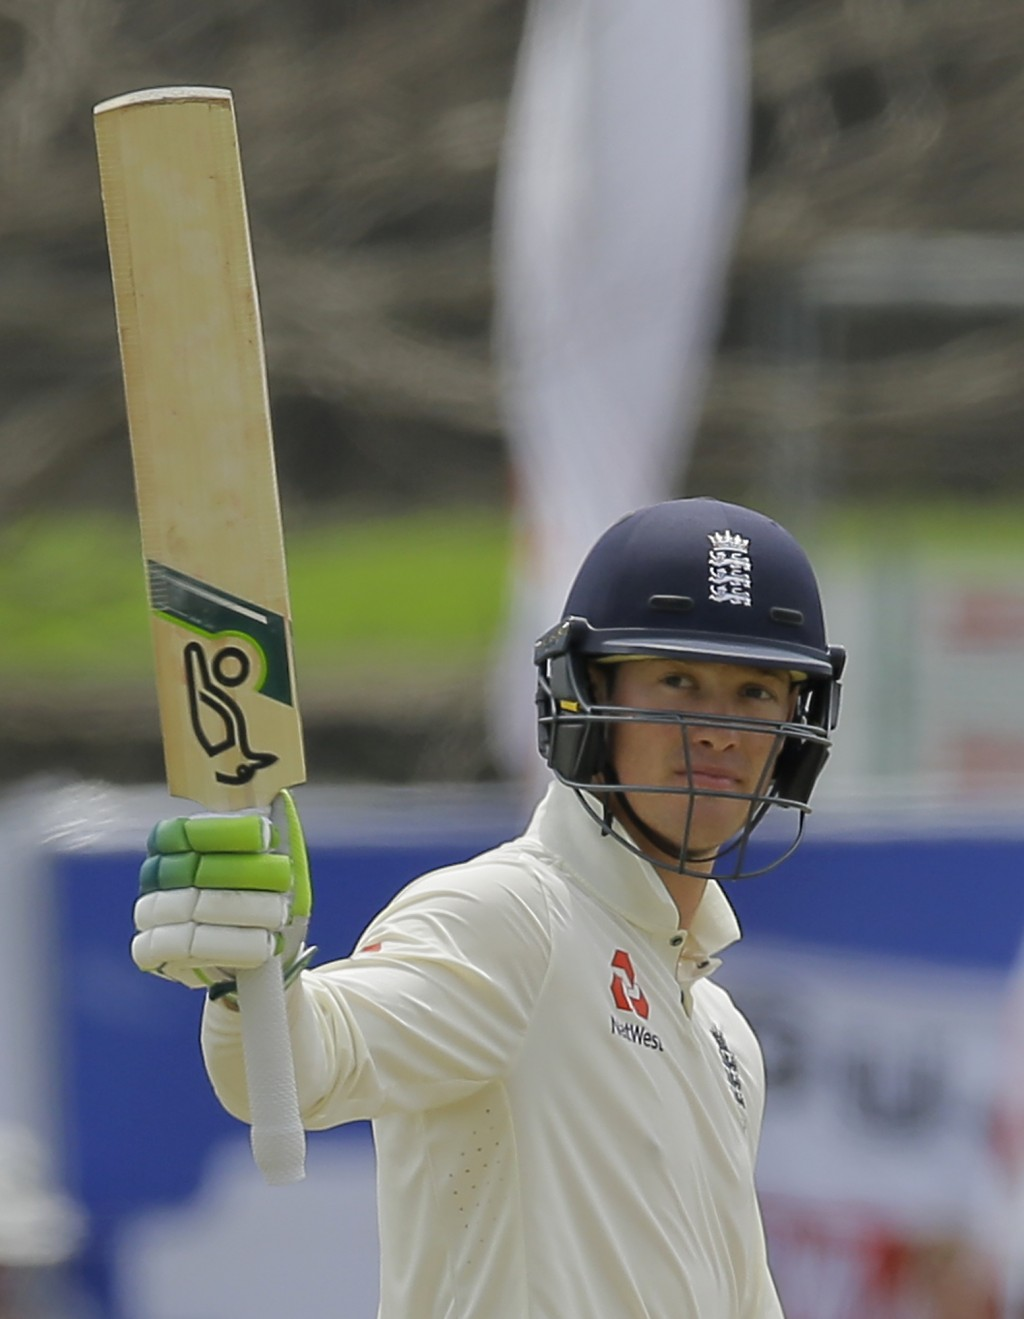 England's Keaton Jennings celebrates scoring a half century during the third day of the first test cricket match between Sri Lanka and England in Gall